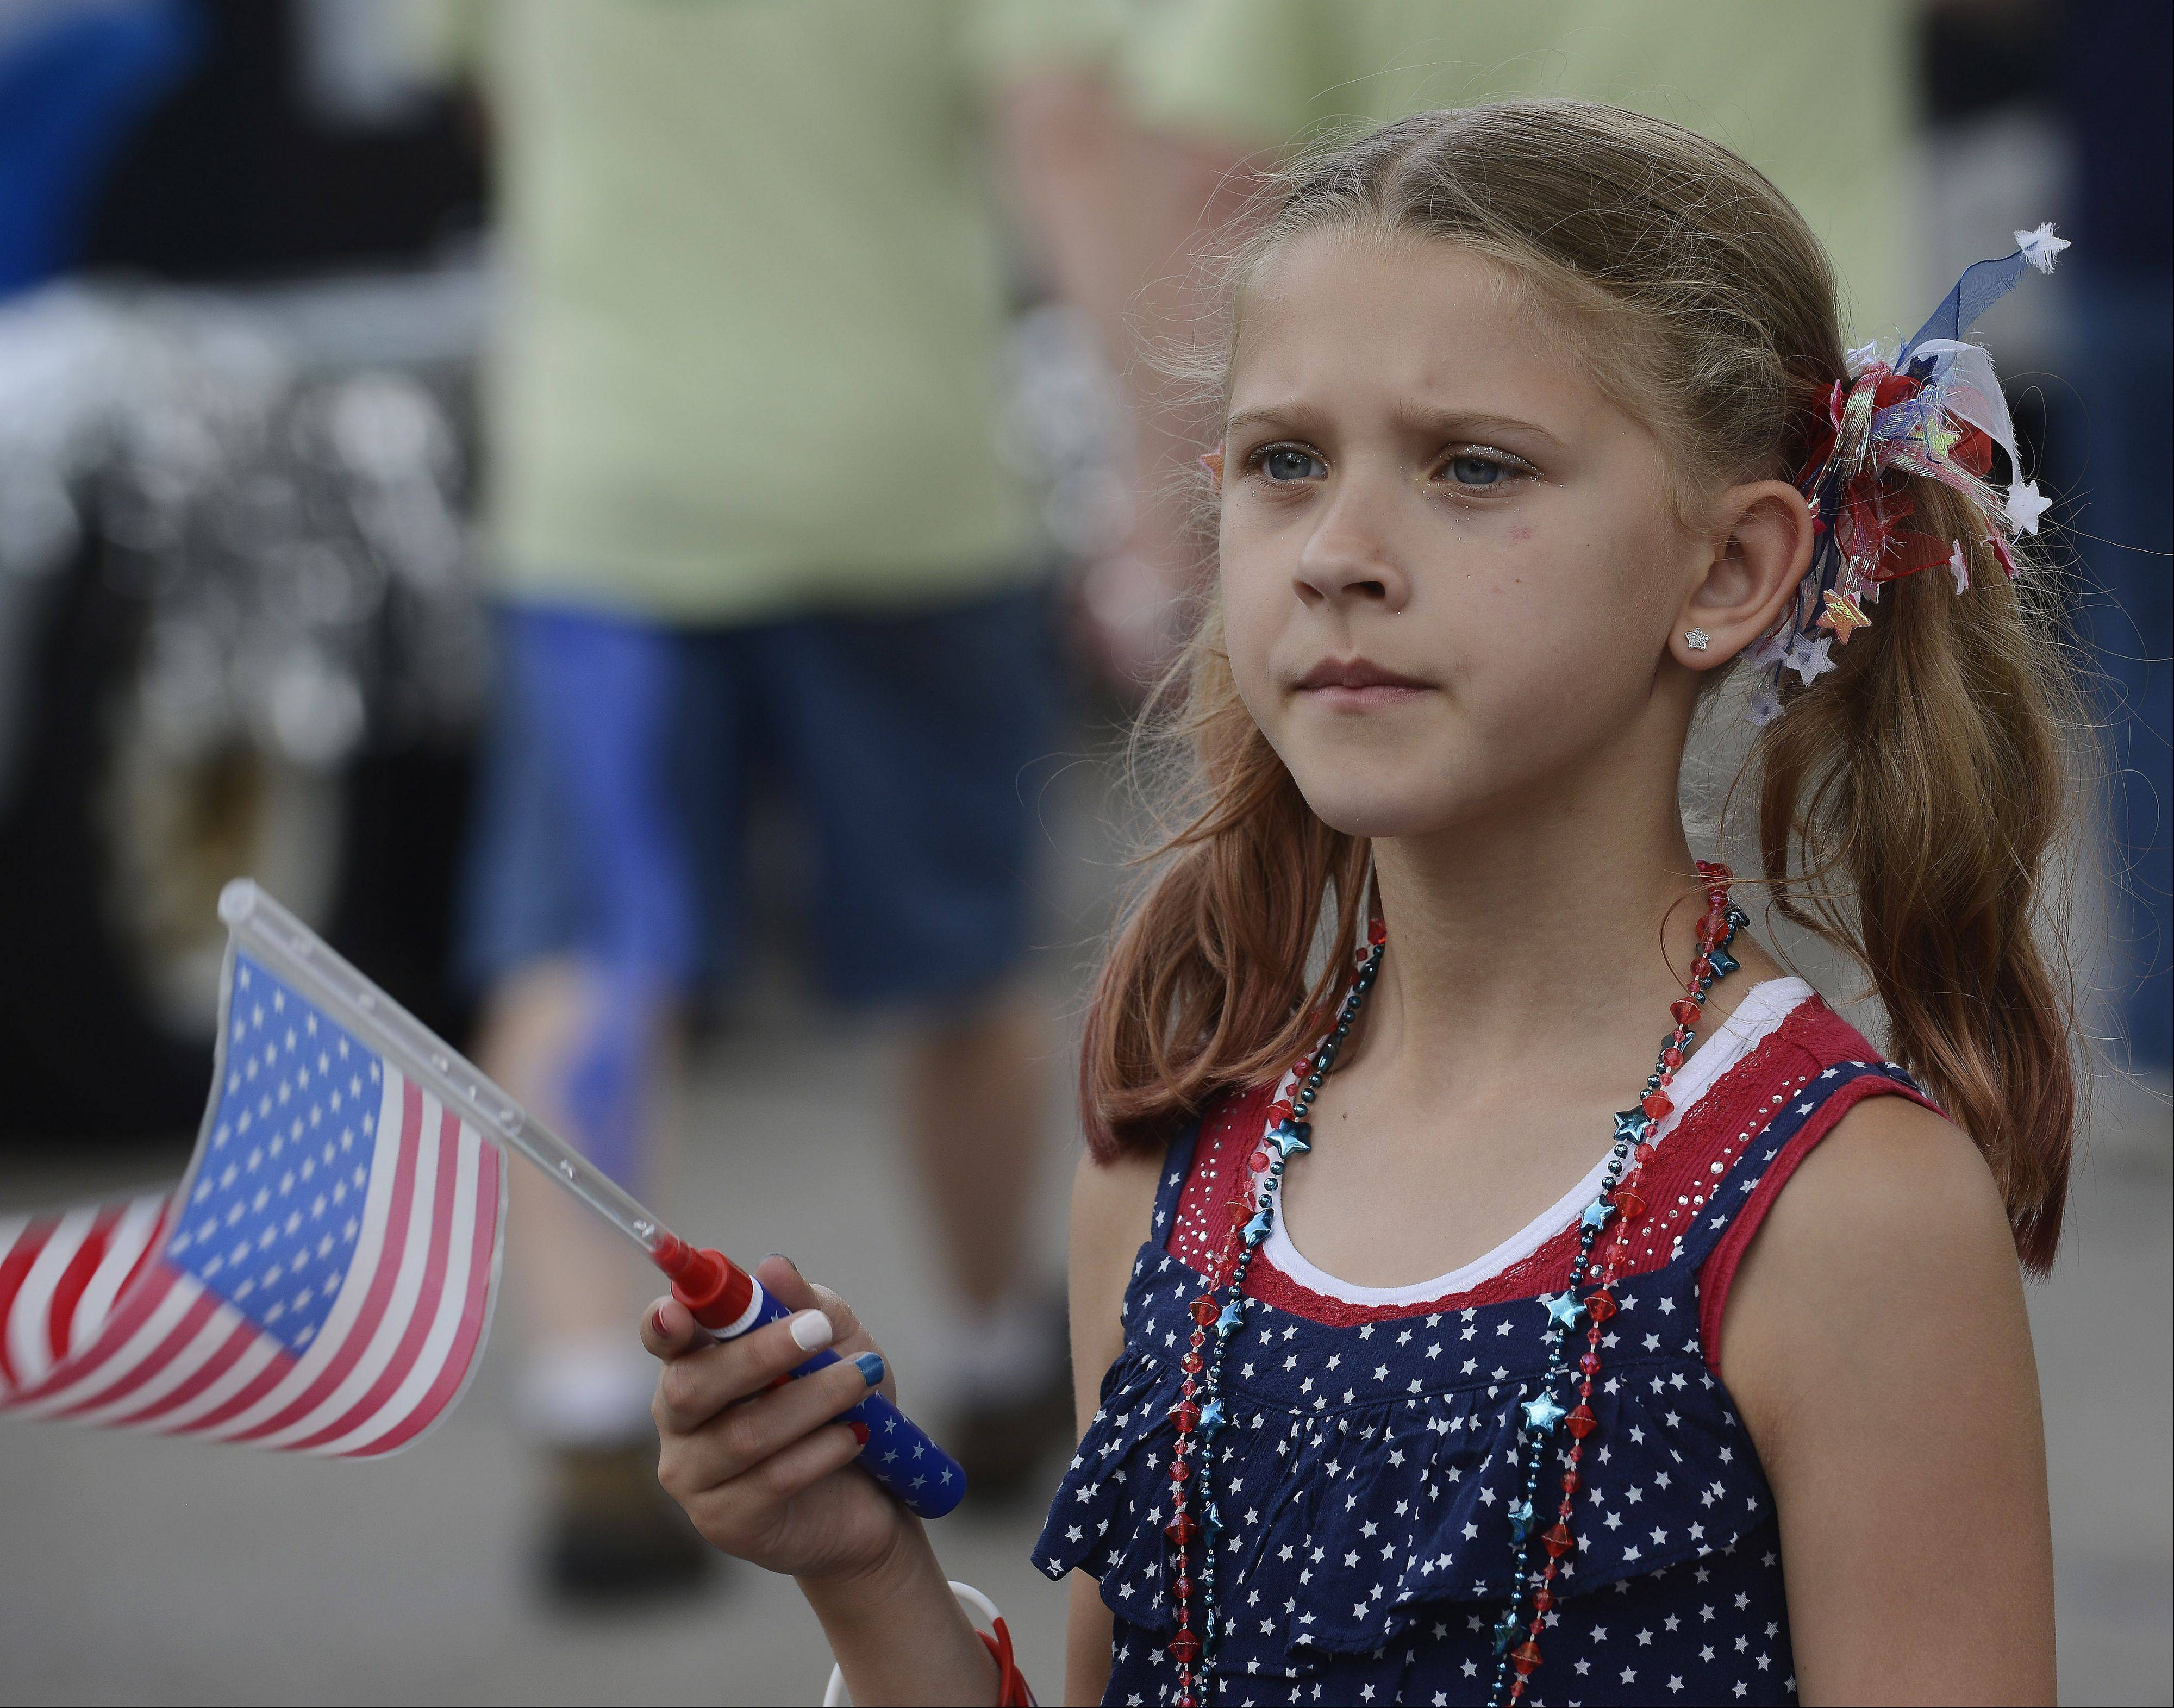 Lily Worline, 9, of Crystal Lake waves her flag during the Rolling Meadows Fourth of July parade Thursday.